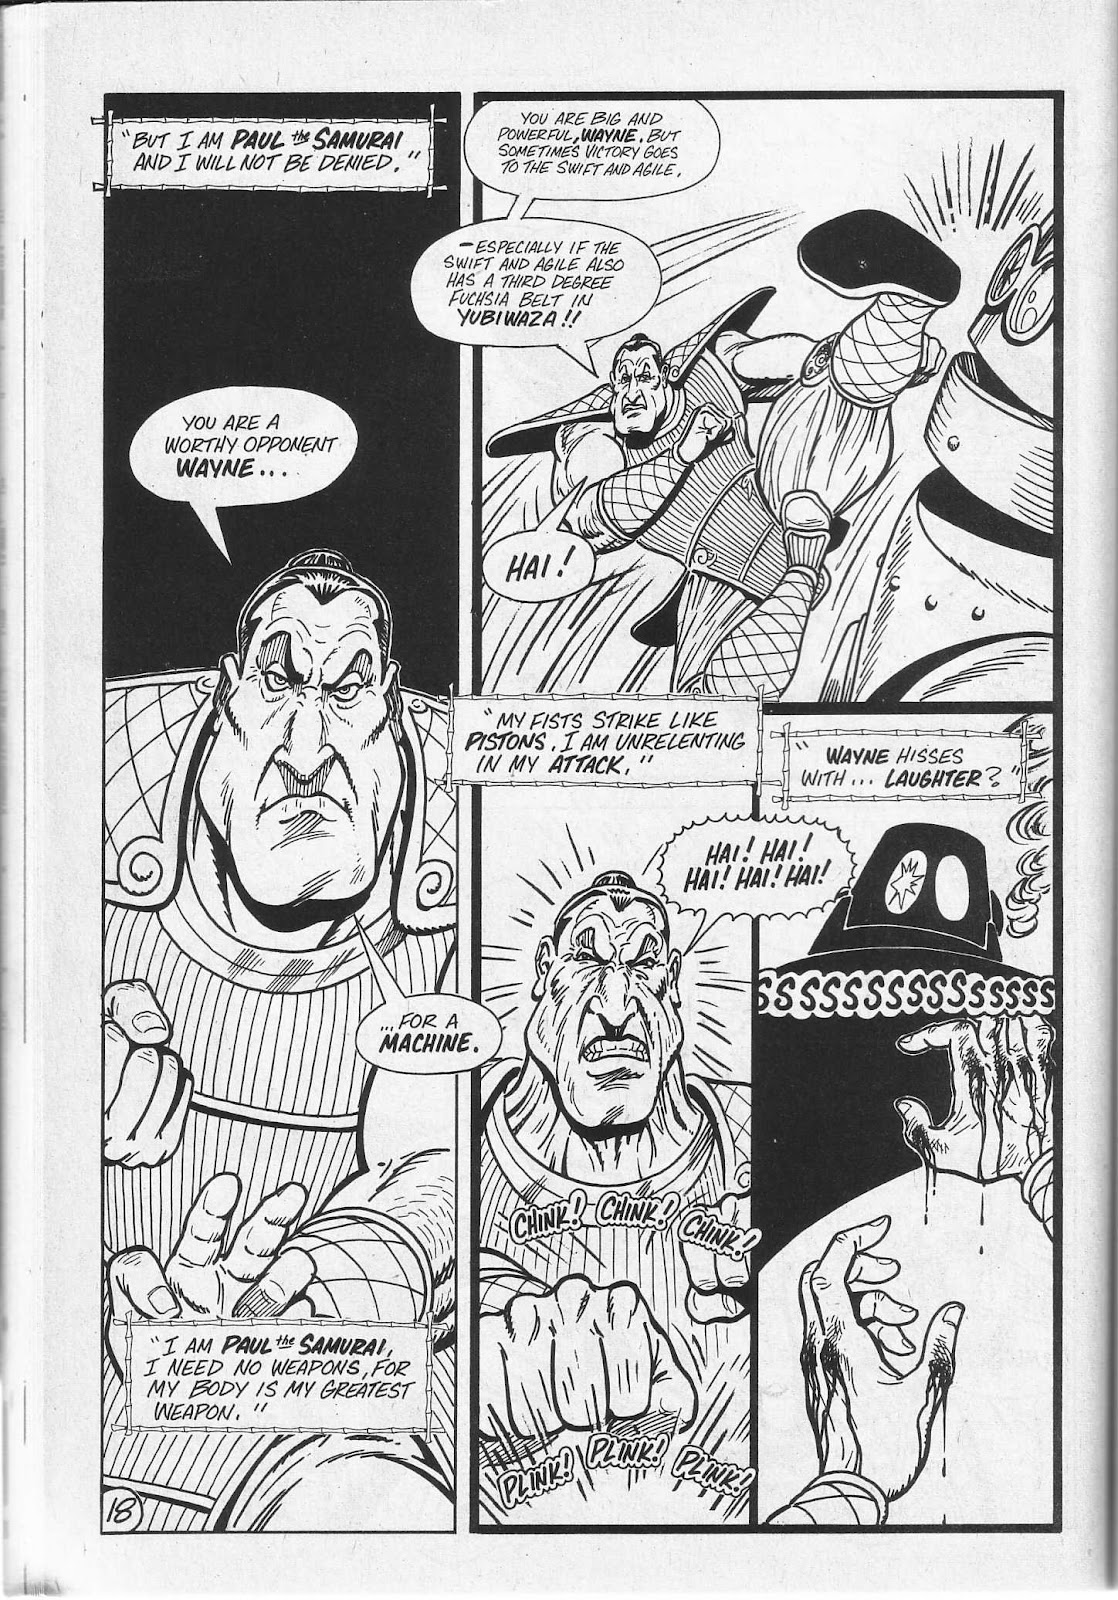 Read online Paul the Samurai (1991) comic -  Issue # TPB - 54